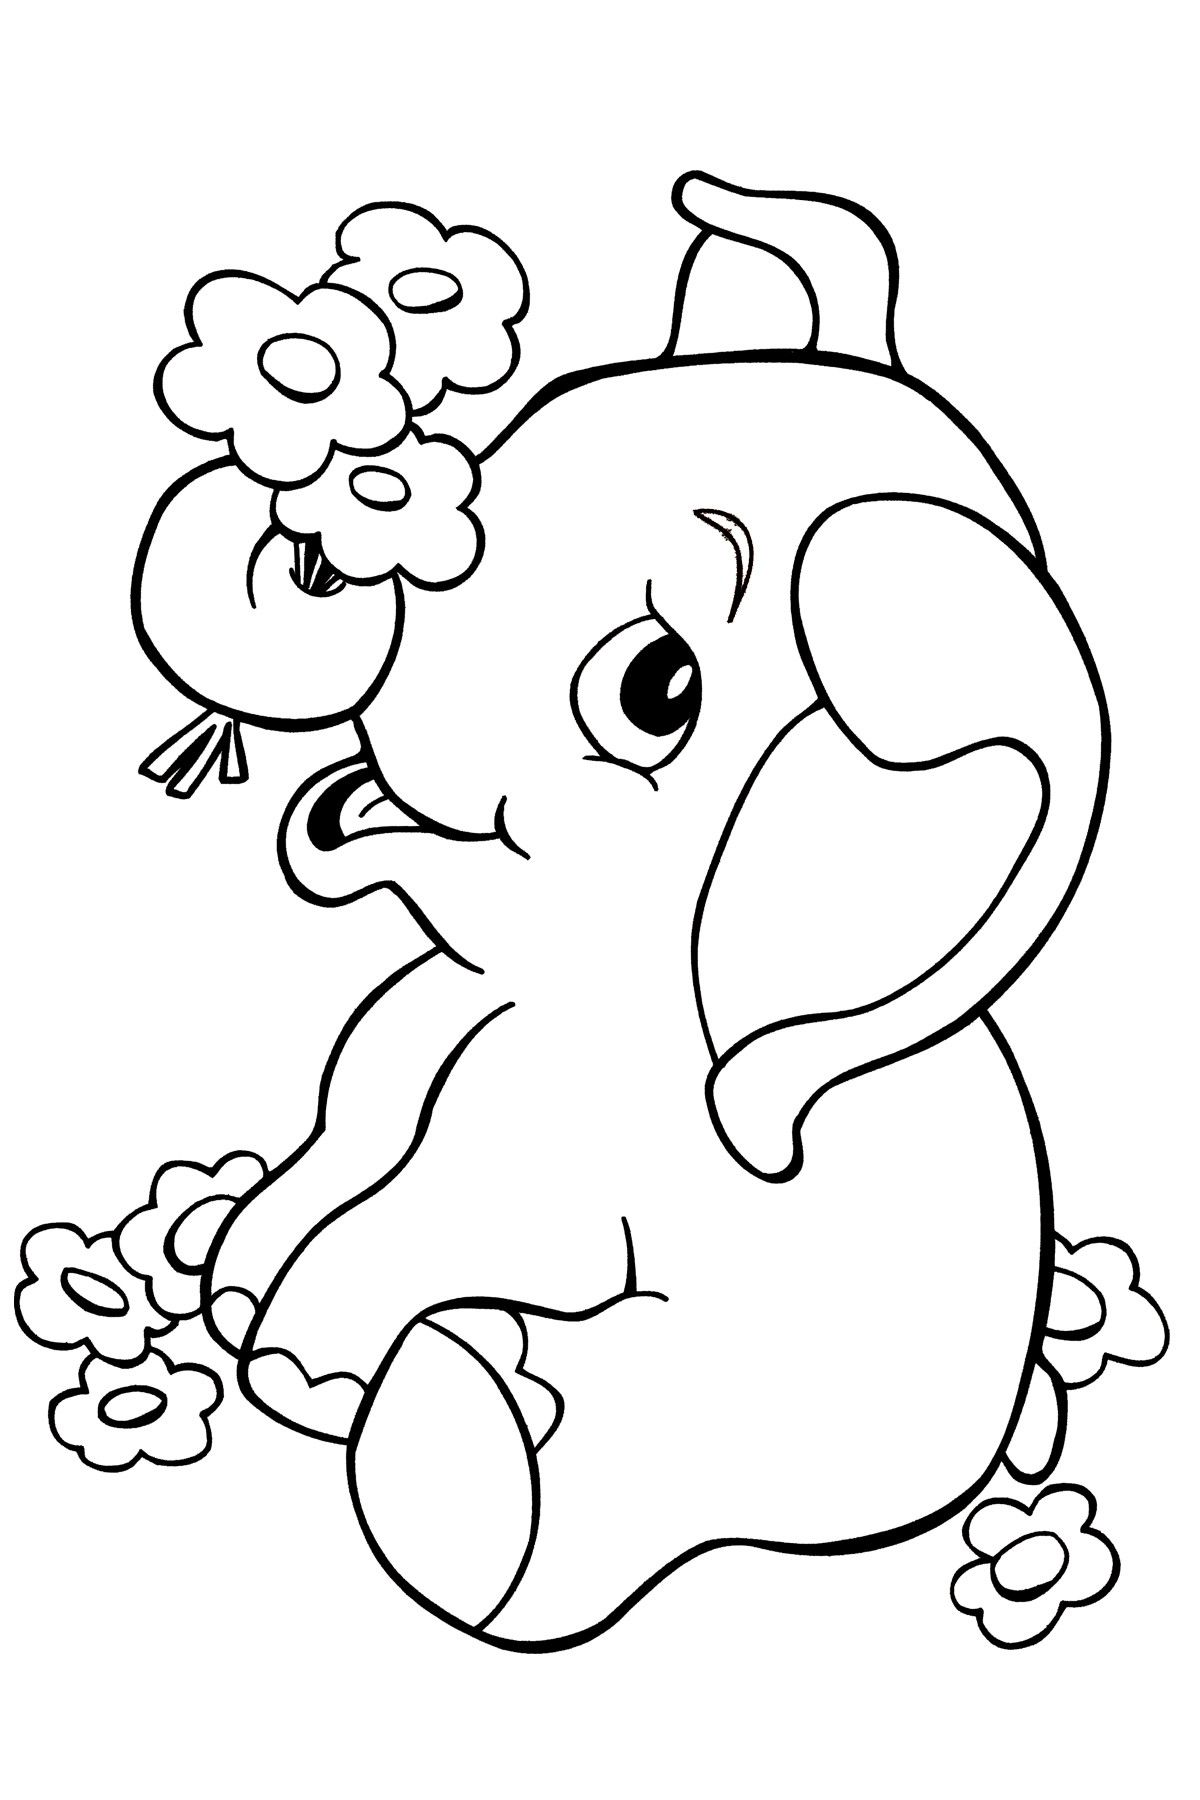 Elephant Coloring Book For Kids Free Printable Elephant Coloring Pages For Kids Elephant Coloring Page Jungle Coloring Pages Coloring Books